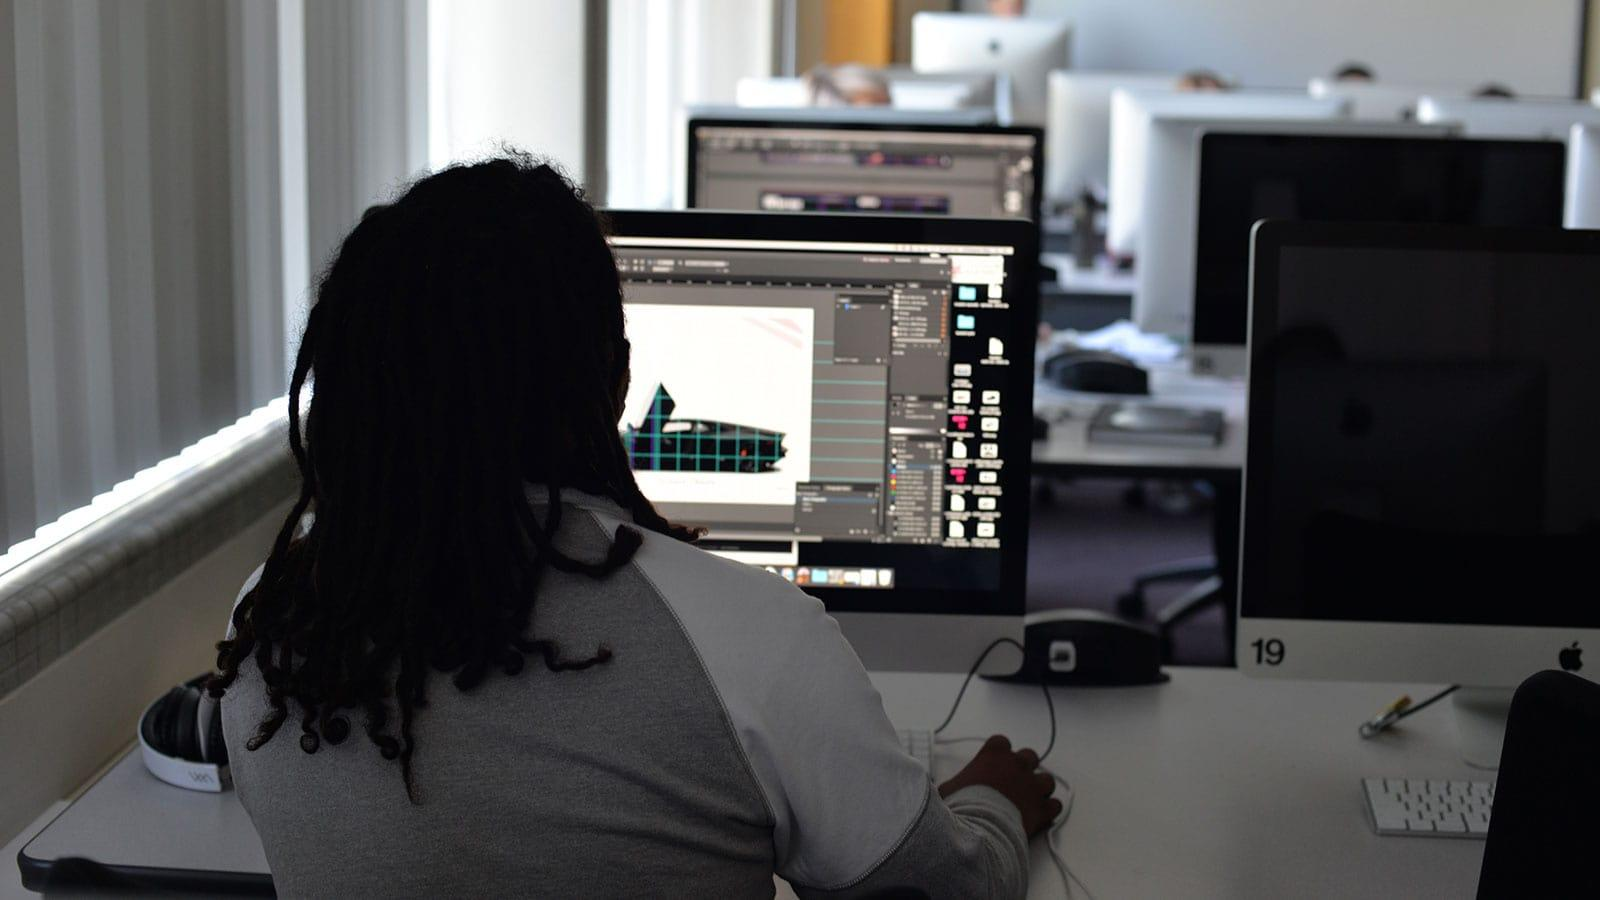 graphic design student working in a lab on a design project